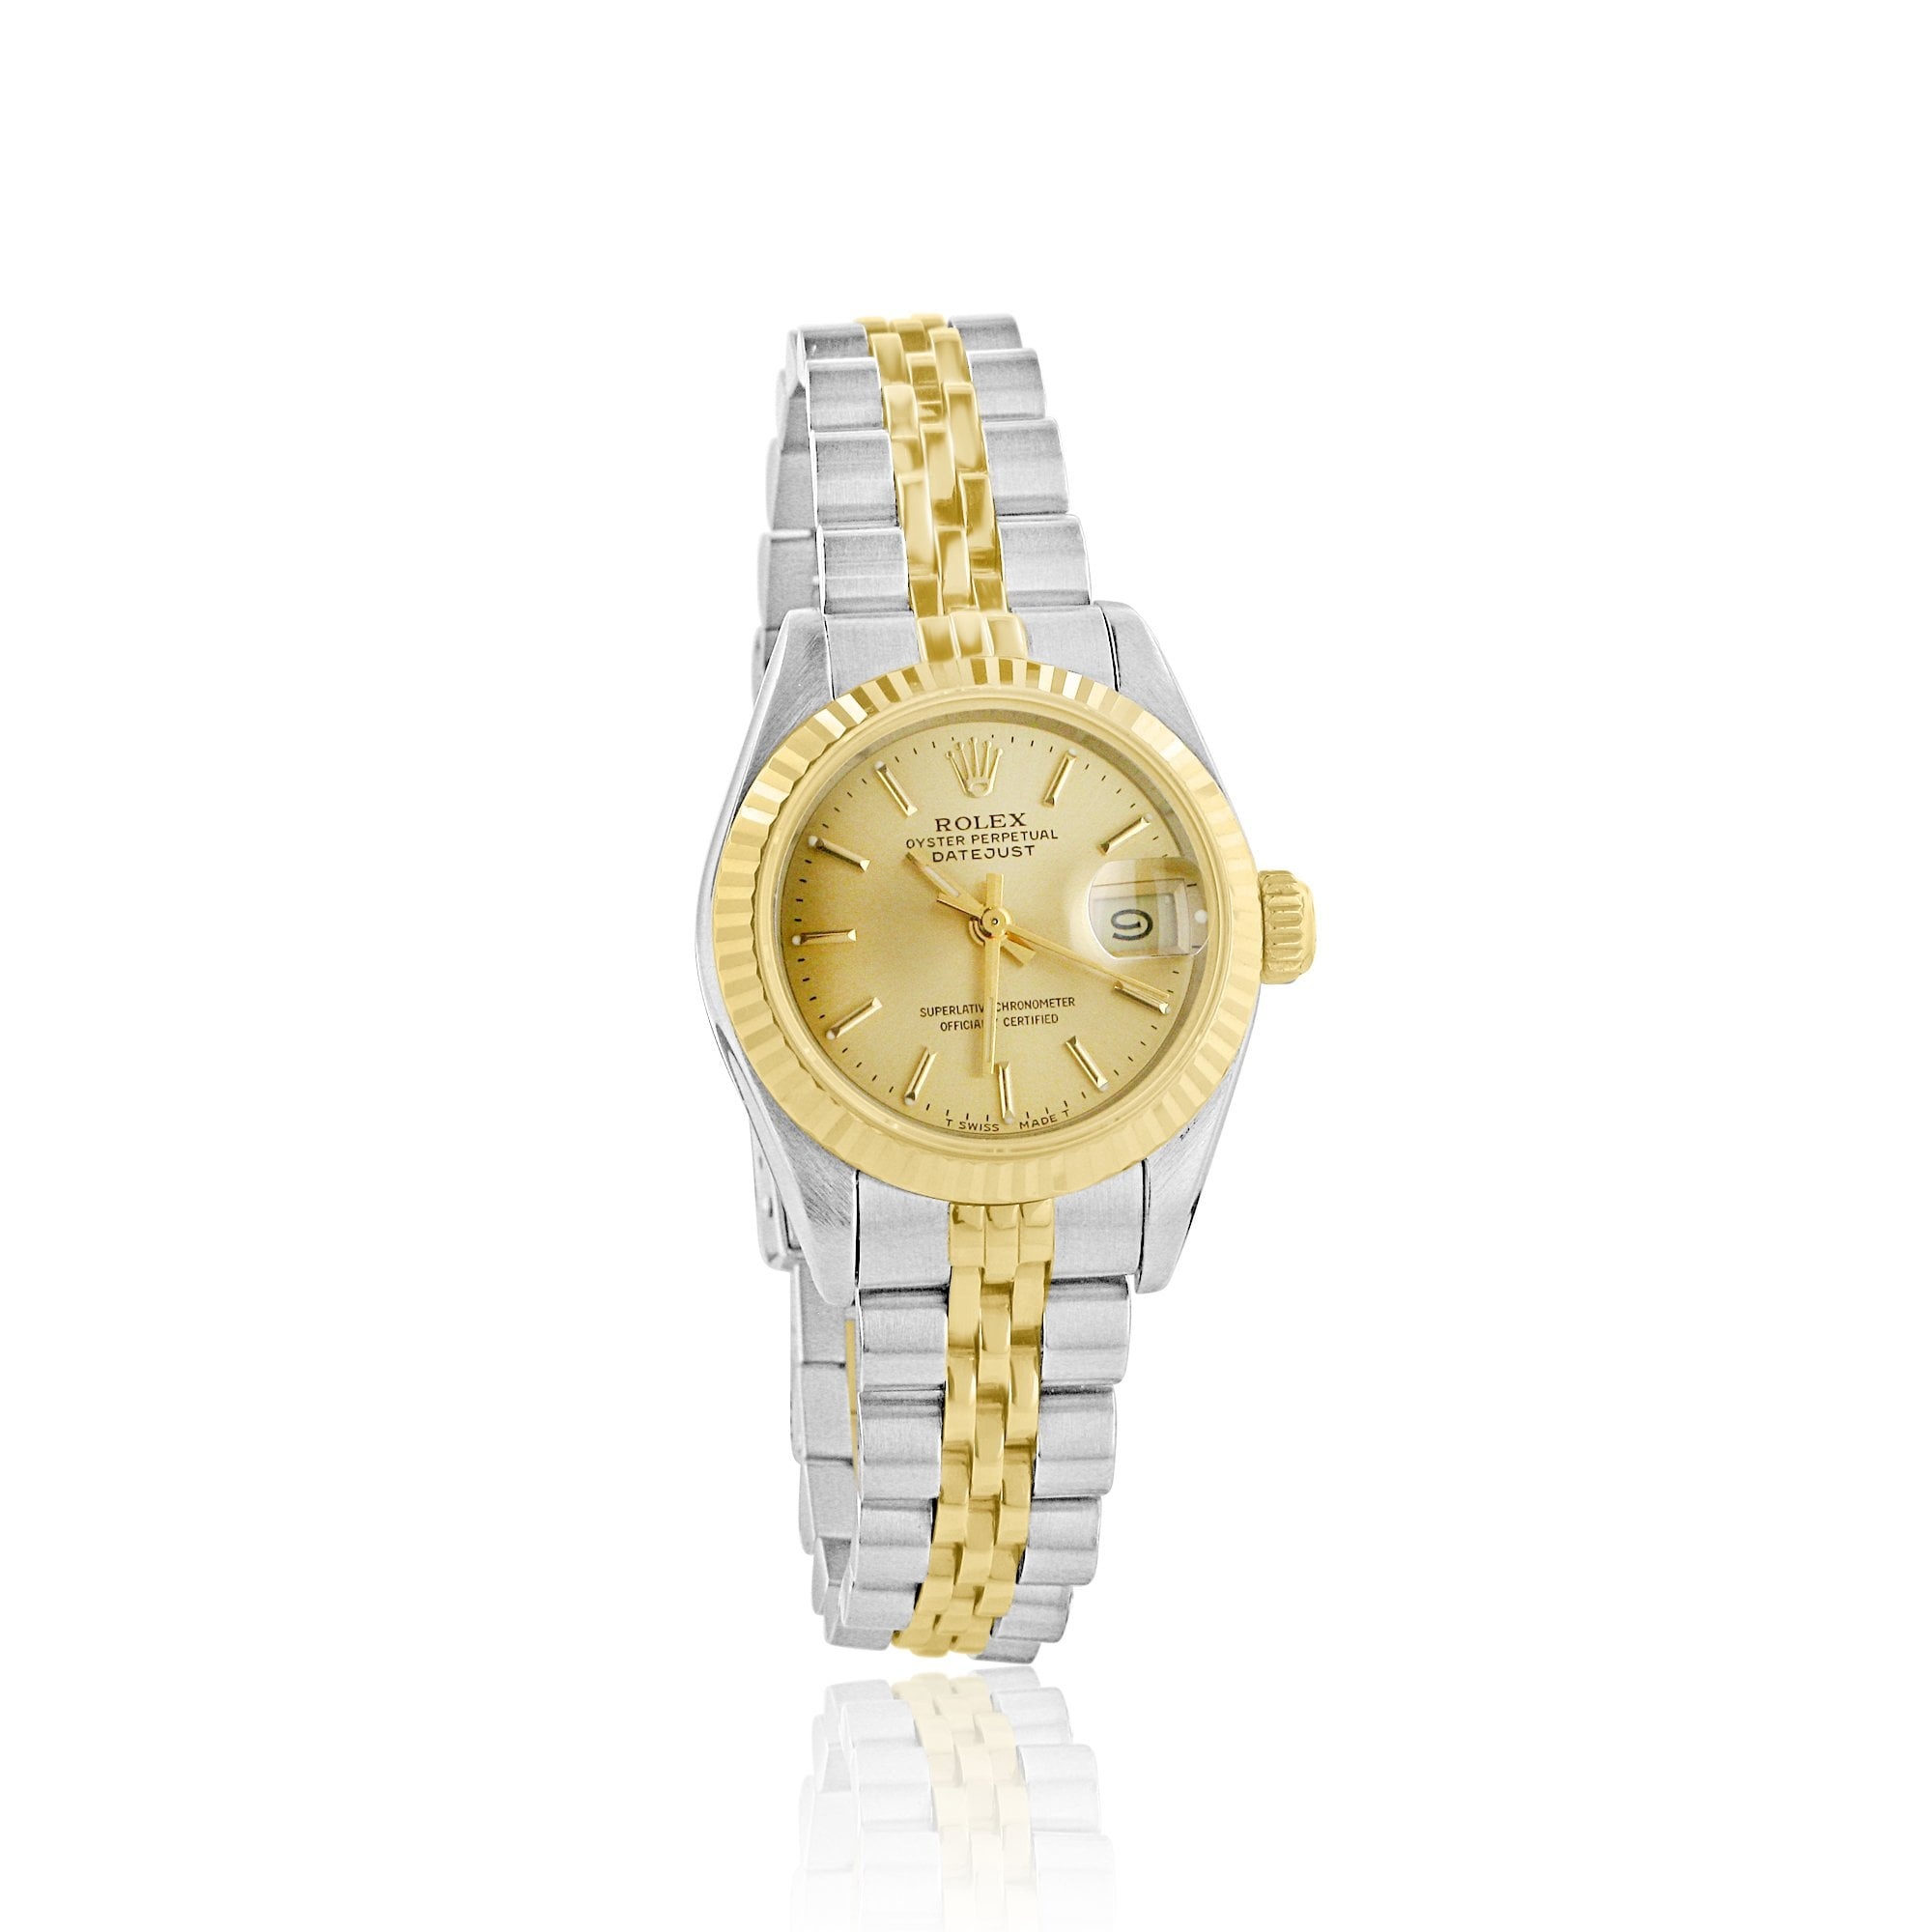 Ladies Steel And 18ct Yellow Gold Oyster Perpetual Rolex Datejust Watch 69173